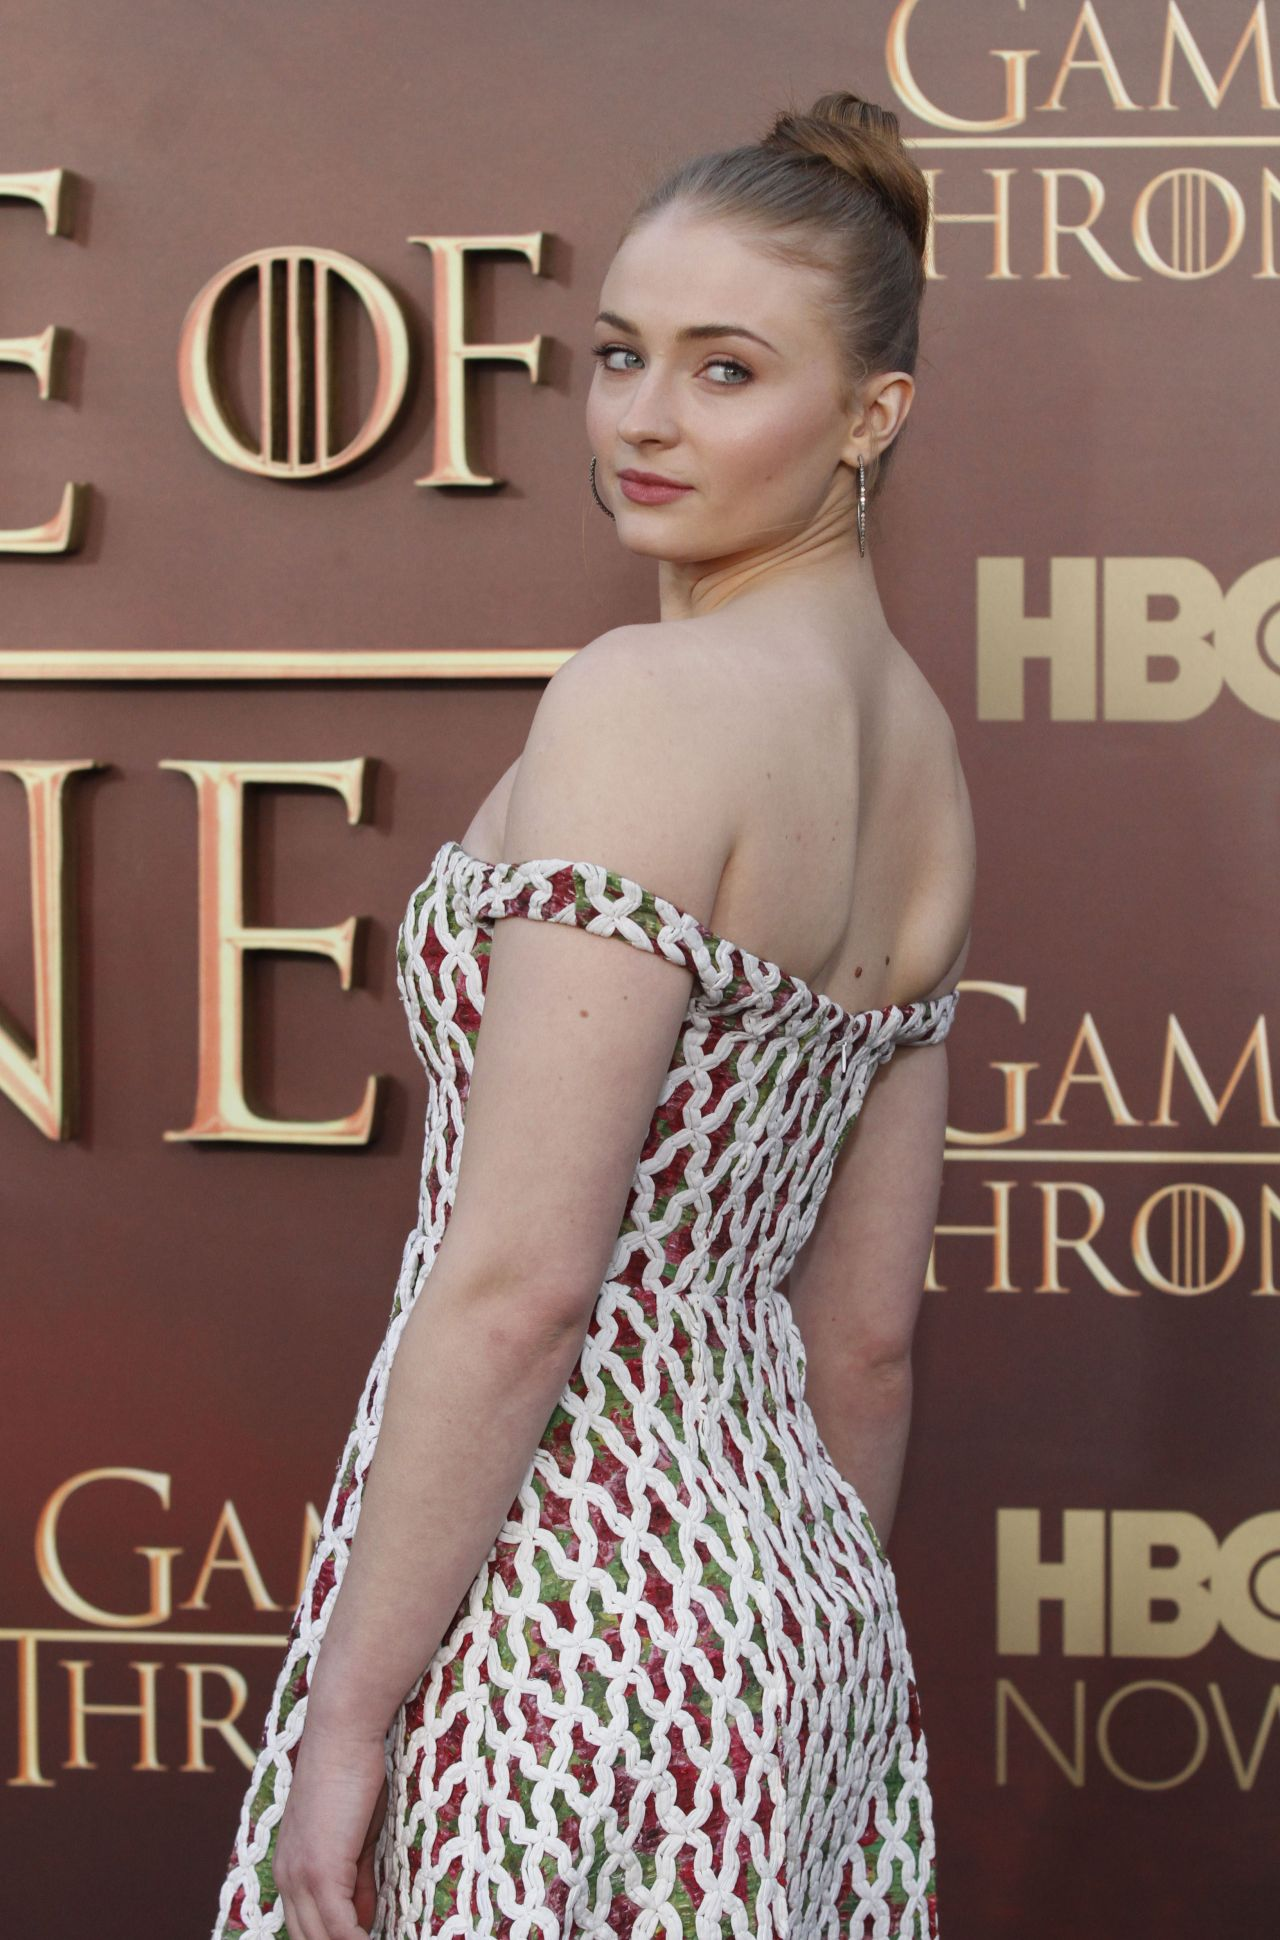 sophie-turner-game-of-thrones-season-5-premiere-in-san-francisco